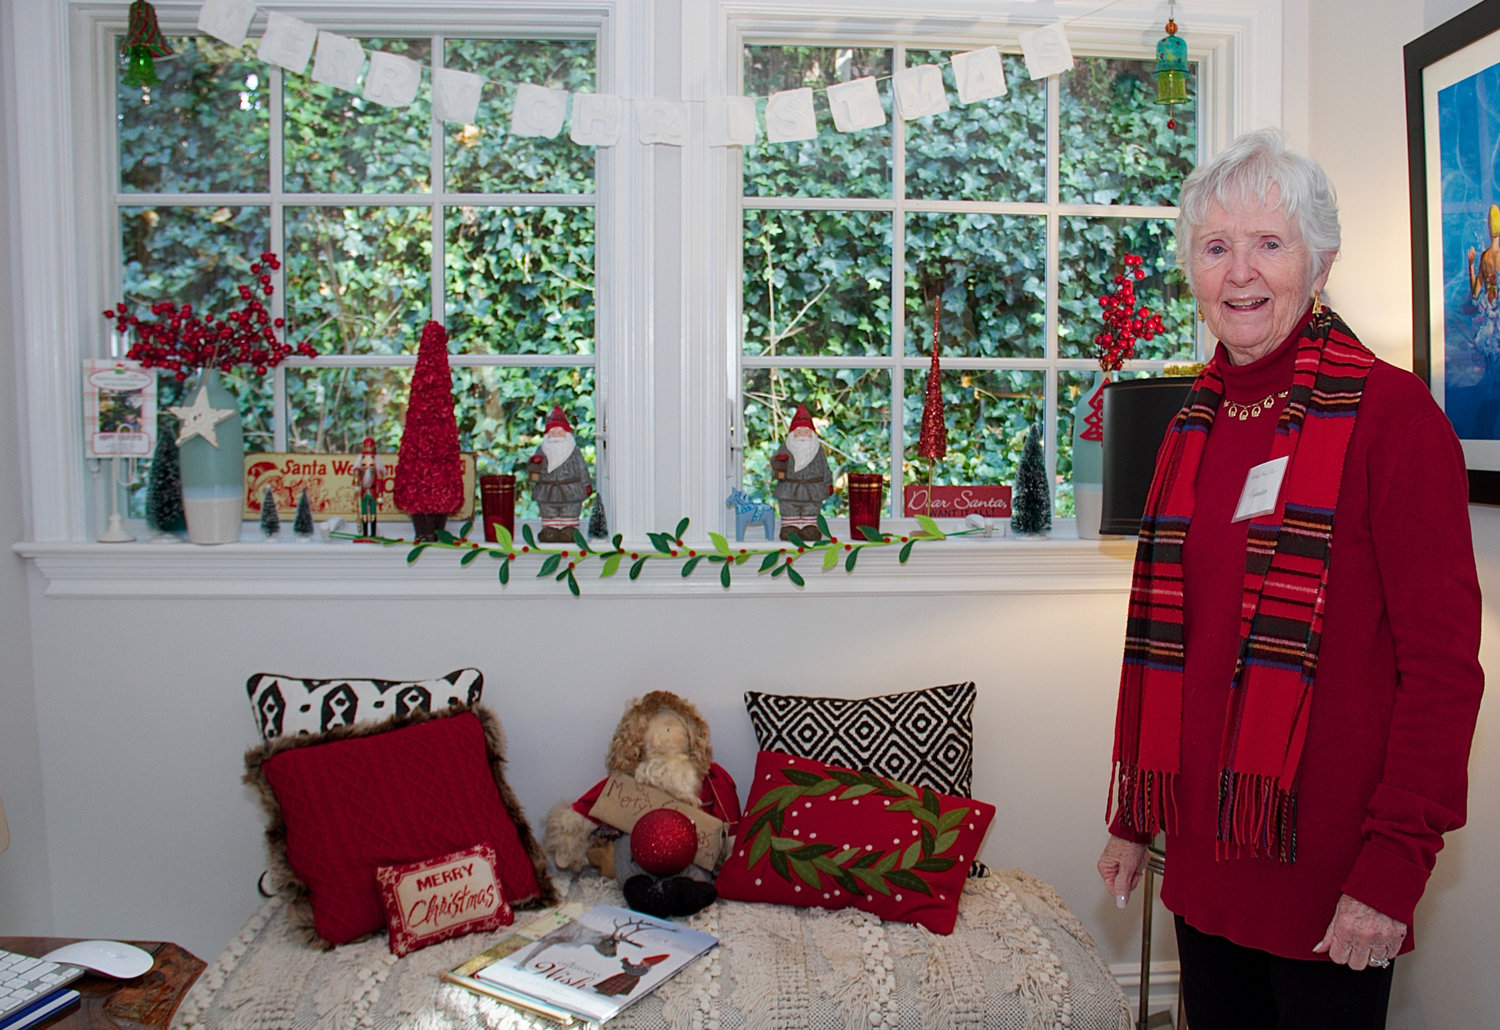 Docent Maureen Maddock greeted guests who visited Jane McGilloway's seaside cottage, which featured a festive window display.